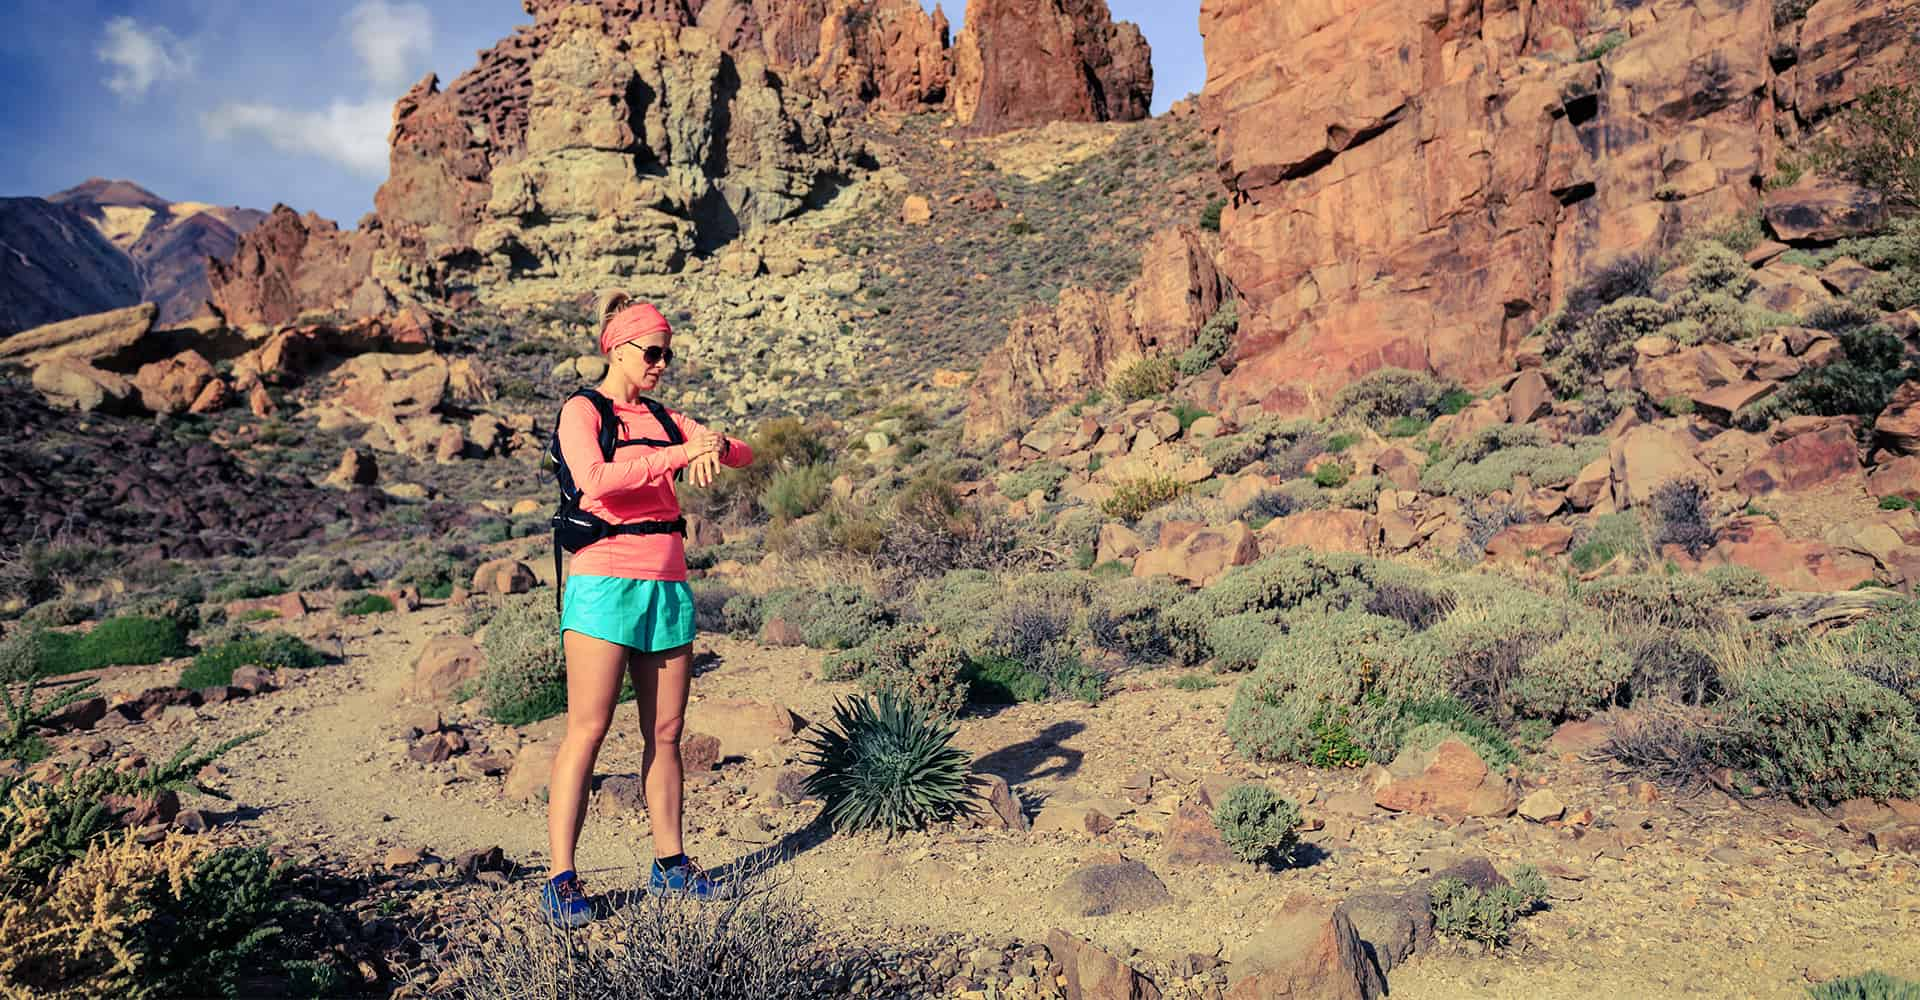 7 Best GPS Watches For Hiking & Trail Running Reviewed [2019]